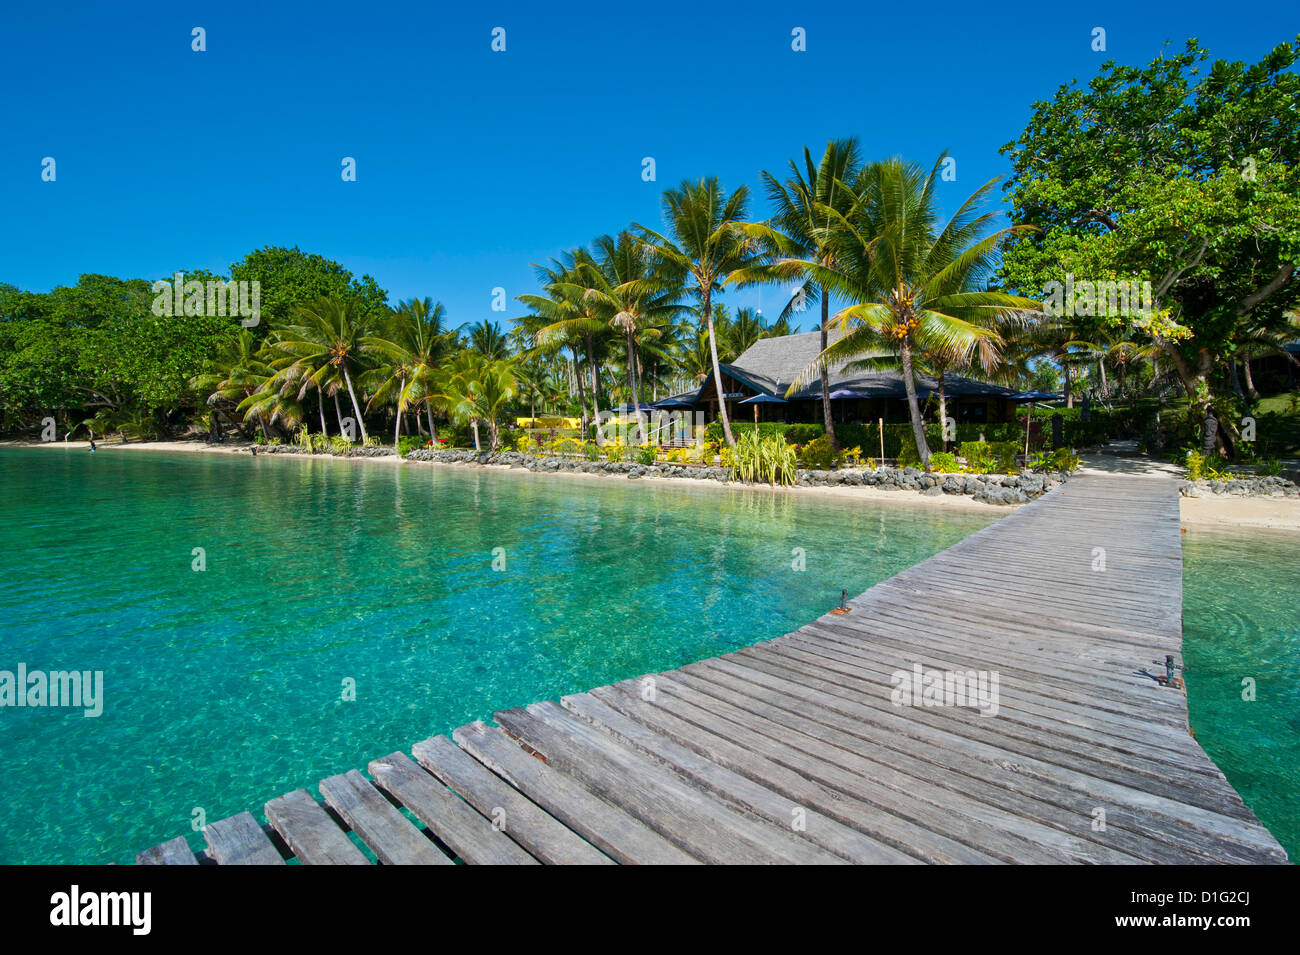 Wooden pier leadin to a resort on Aore islet before the Island of Espiritu Santo, Vanuatu, South Pacific, Pacific - Stock Image